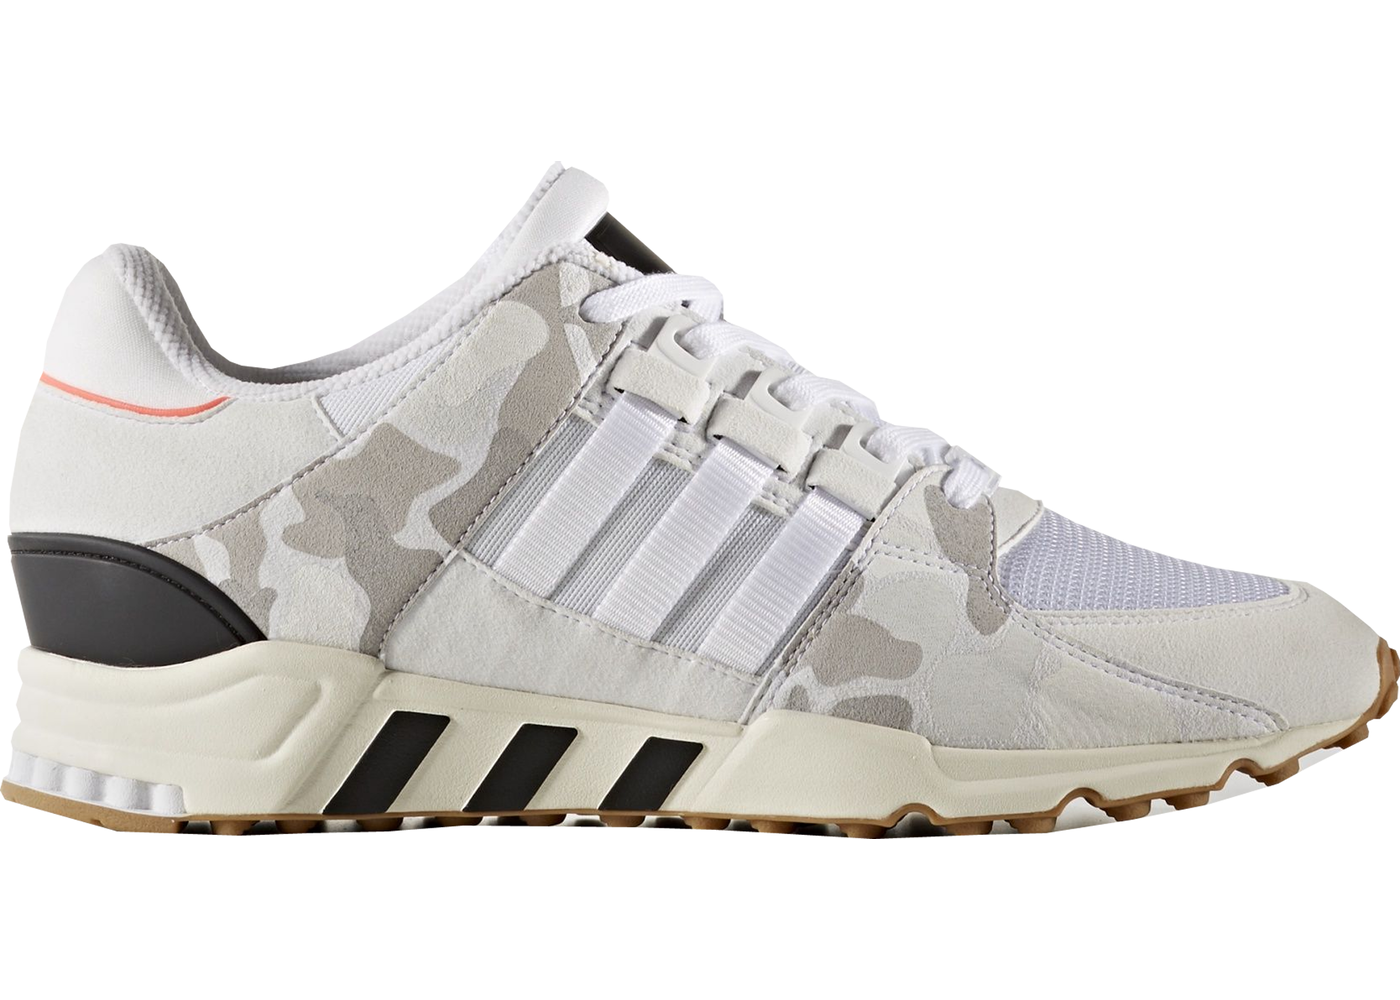 Adidas Originals Equipment Running Support 93 TKO EQT Tokyo